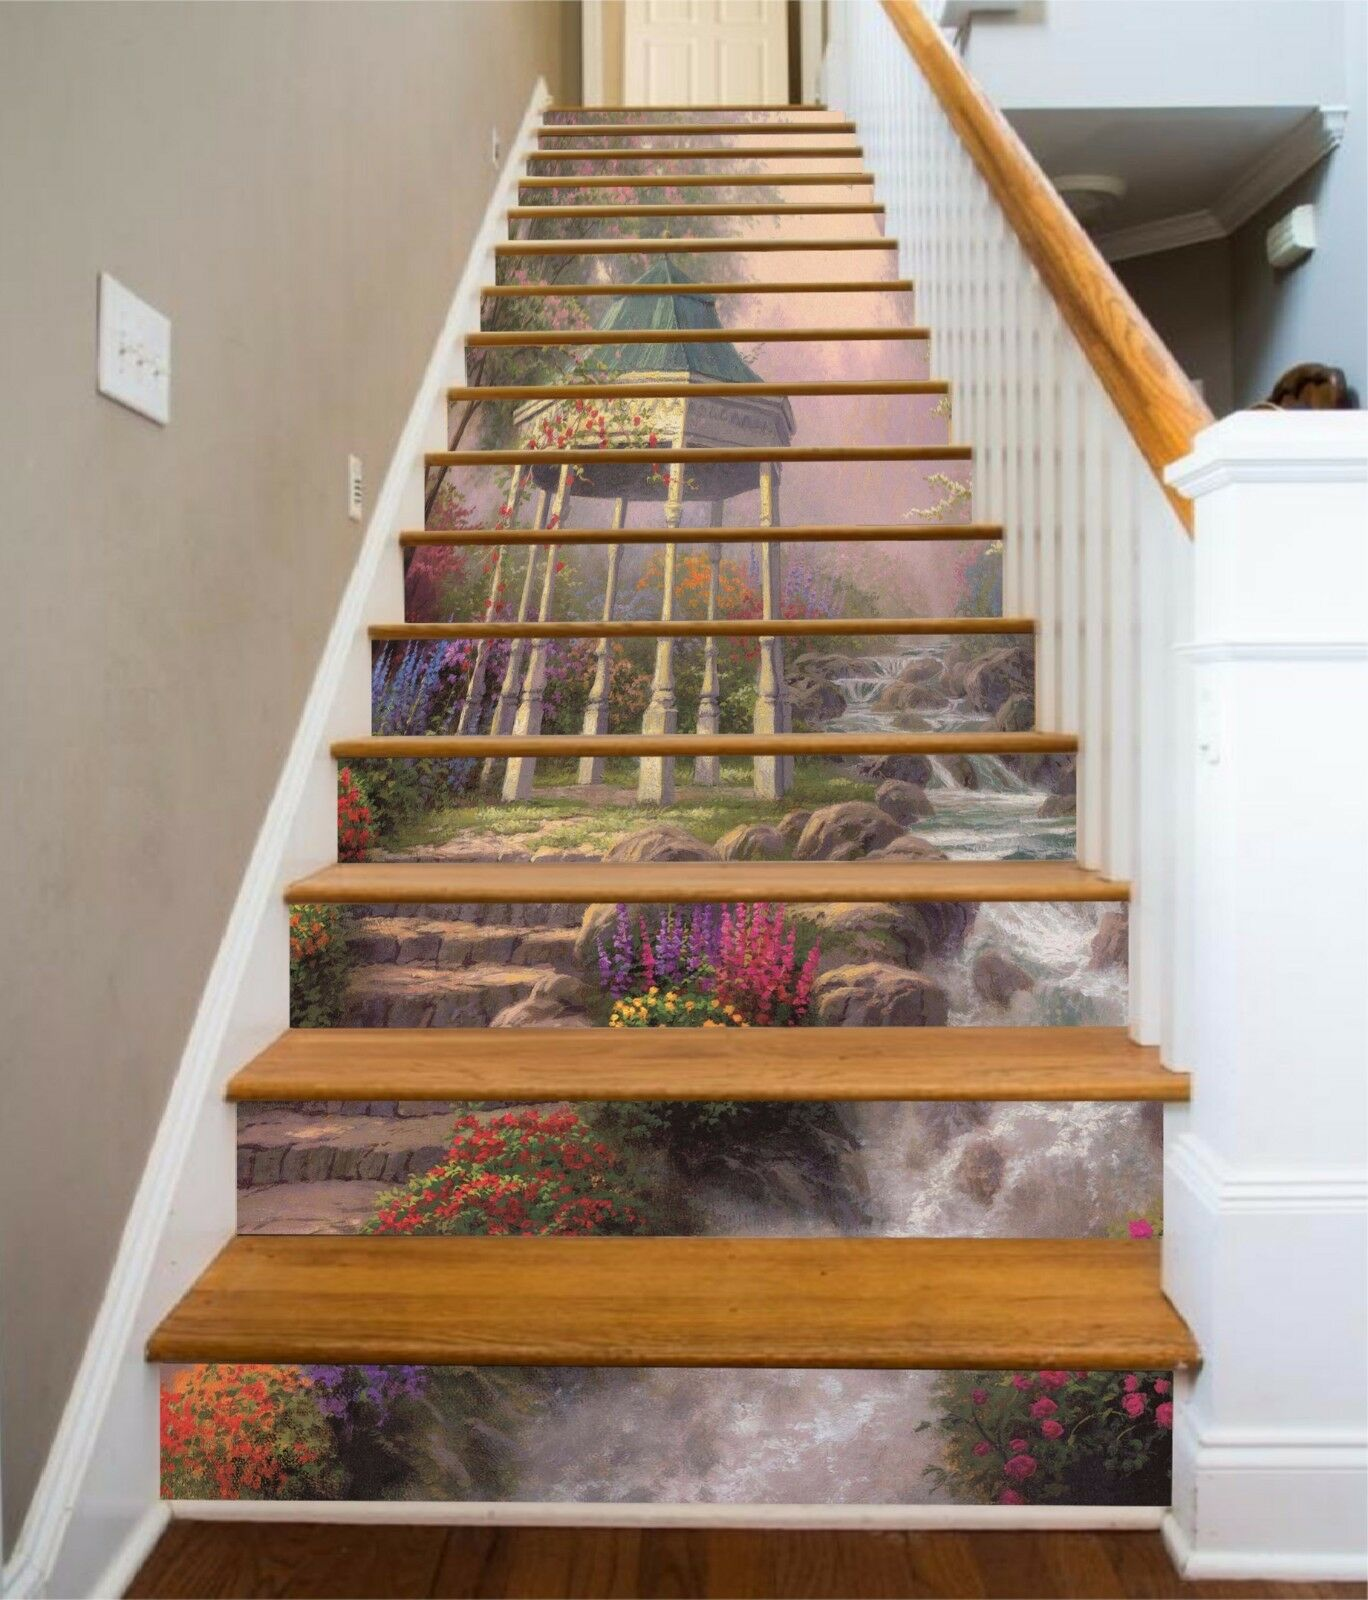 3D Garden Pavilion 8Stair Risers Decoration Photo Mural Vinyl Decal Wallpaper AU